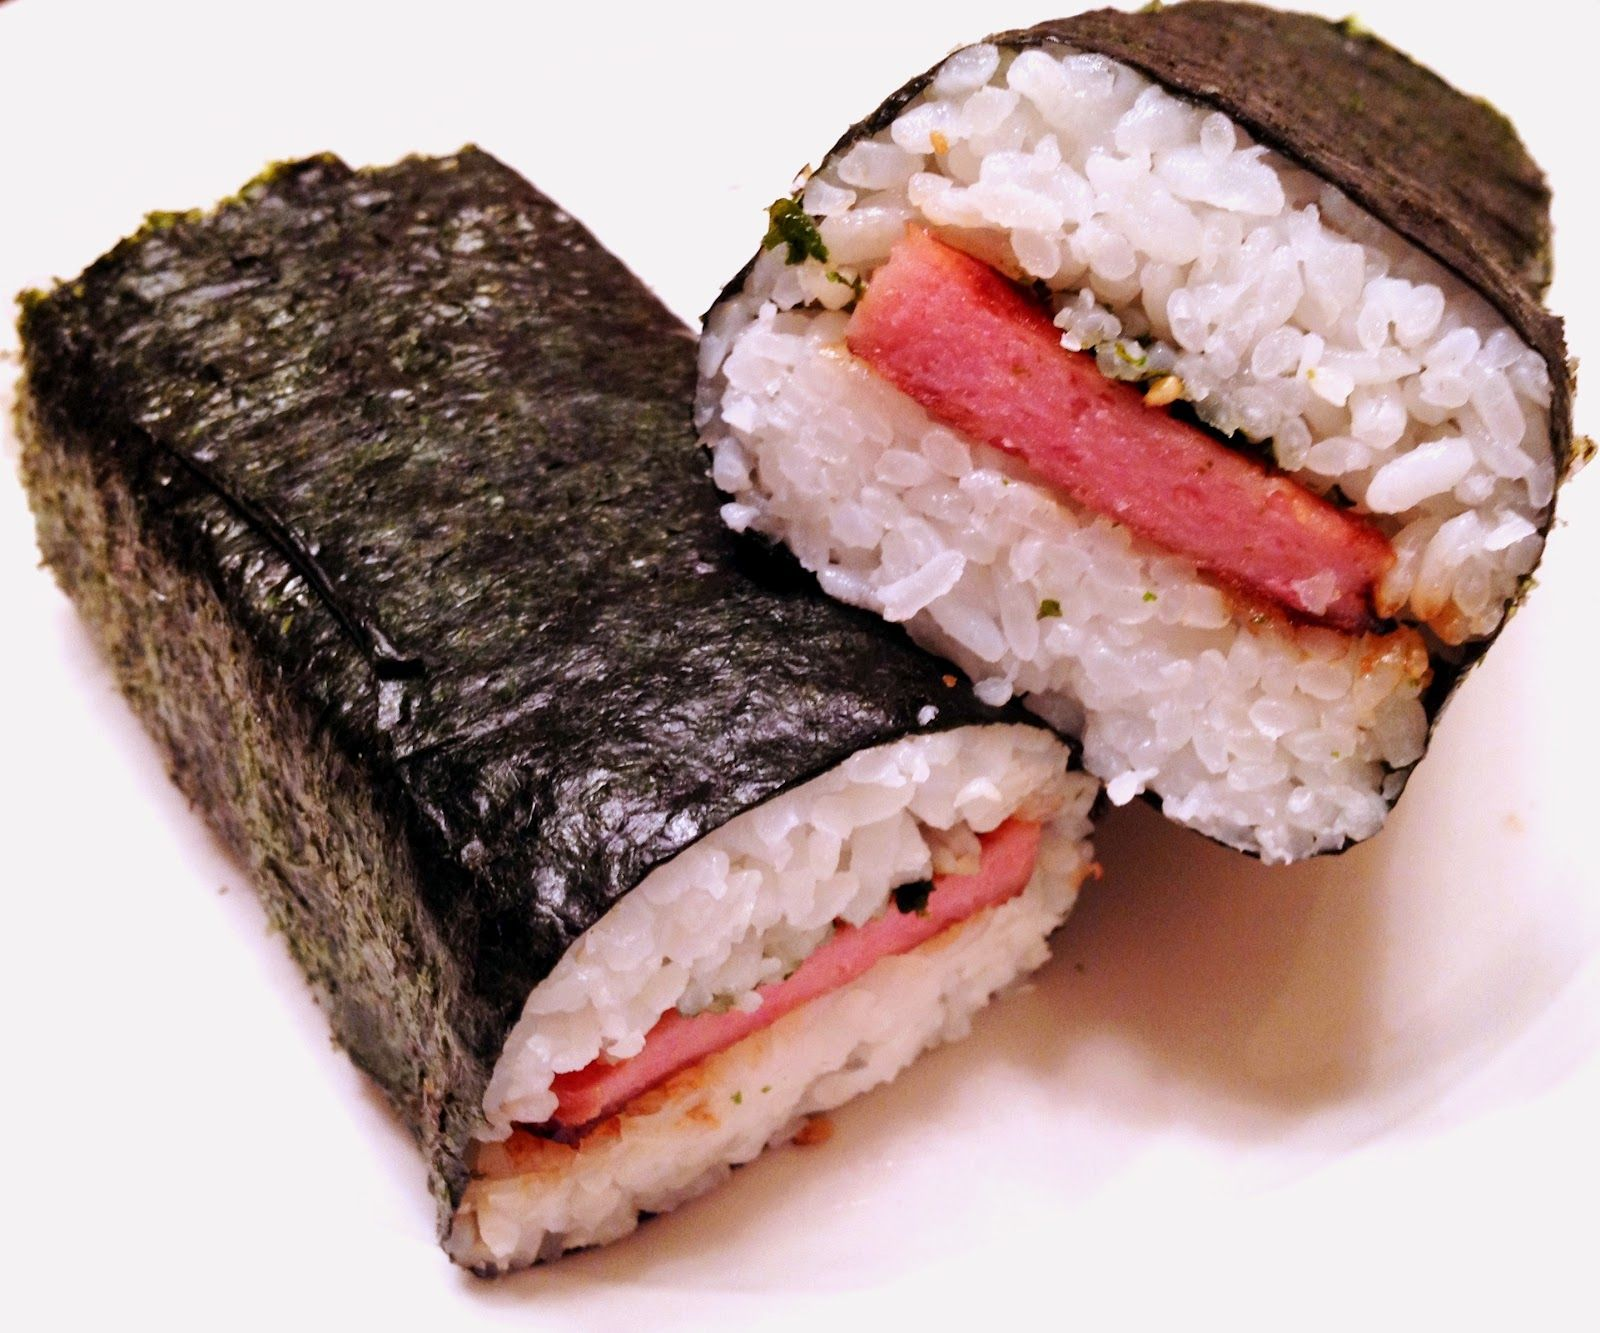 Kaukau time kaukau is a hawaiian pidgin slang word meaning kaukau is a hawaiian pidgin slang word meaning food or to eat spam musubi recipe note i prefer the method of boiling the sauce and then setting forumfinder Choice Image